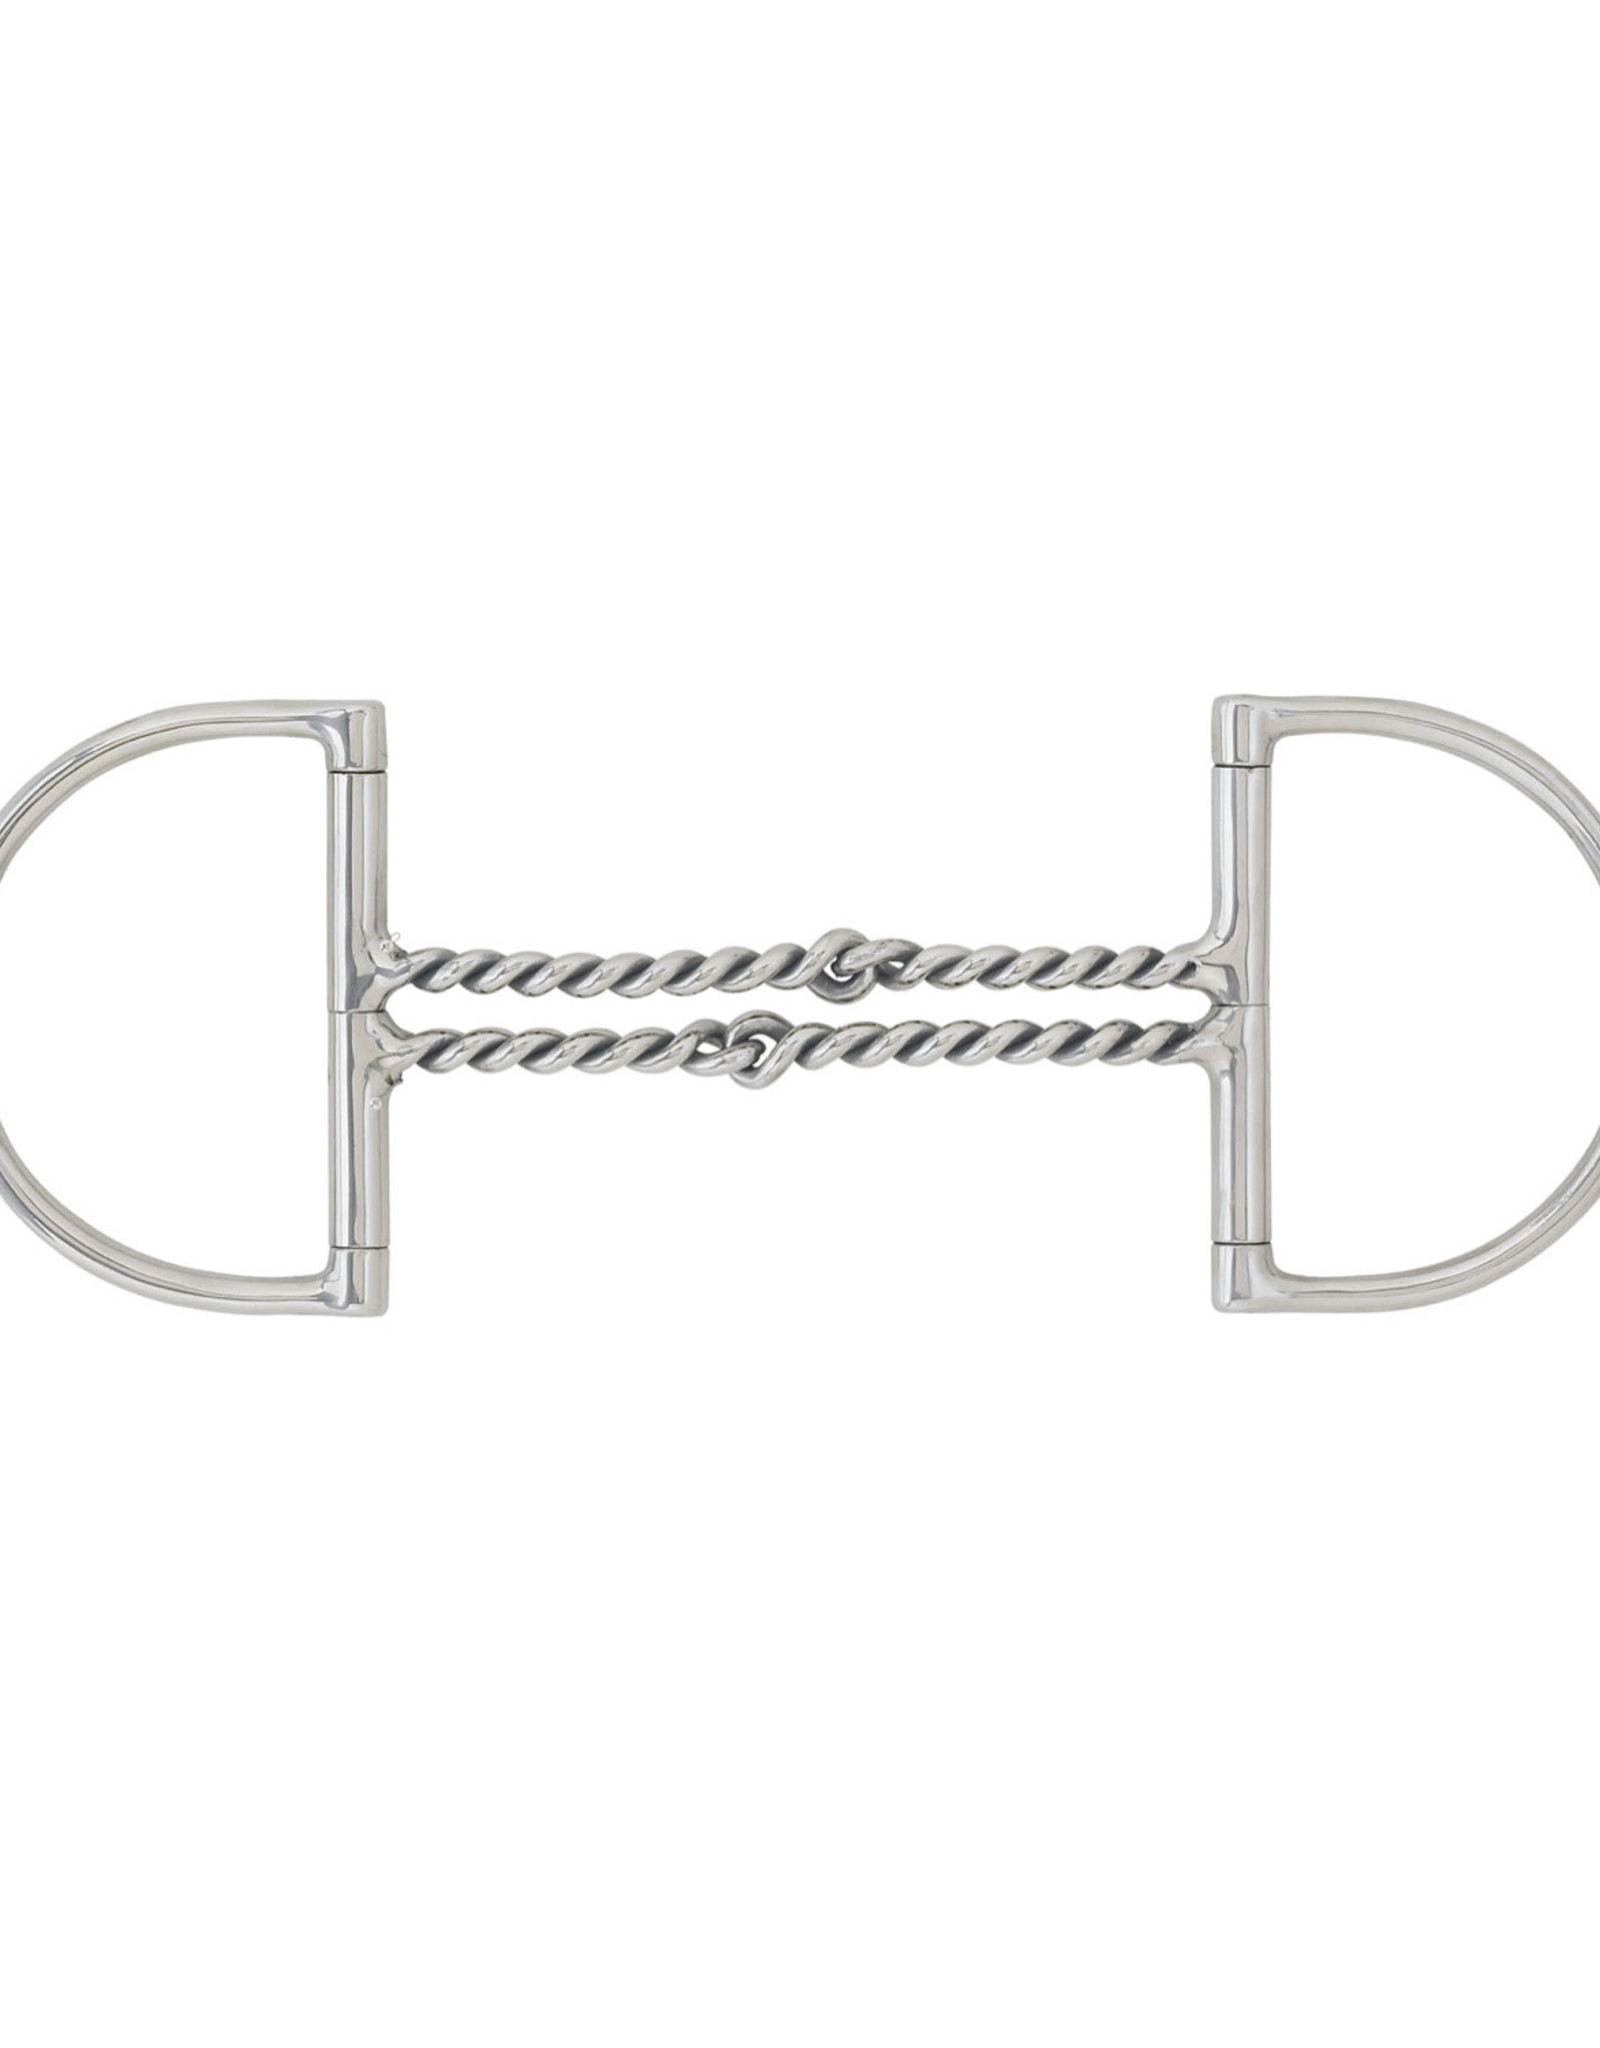 Centaur Curved Double Twisted Wire Hunter Dee Bit